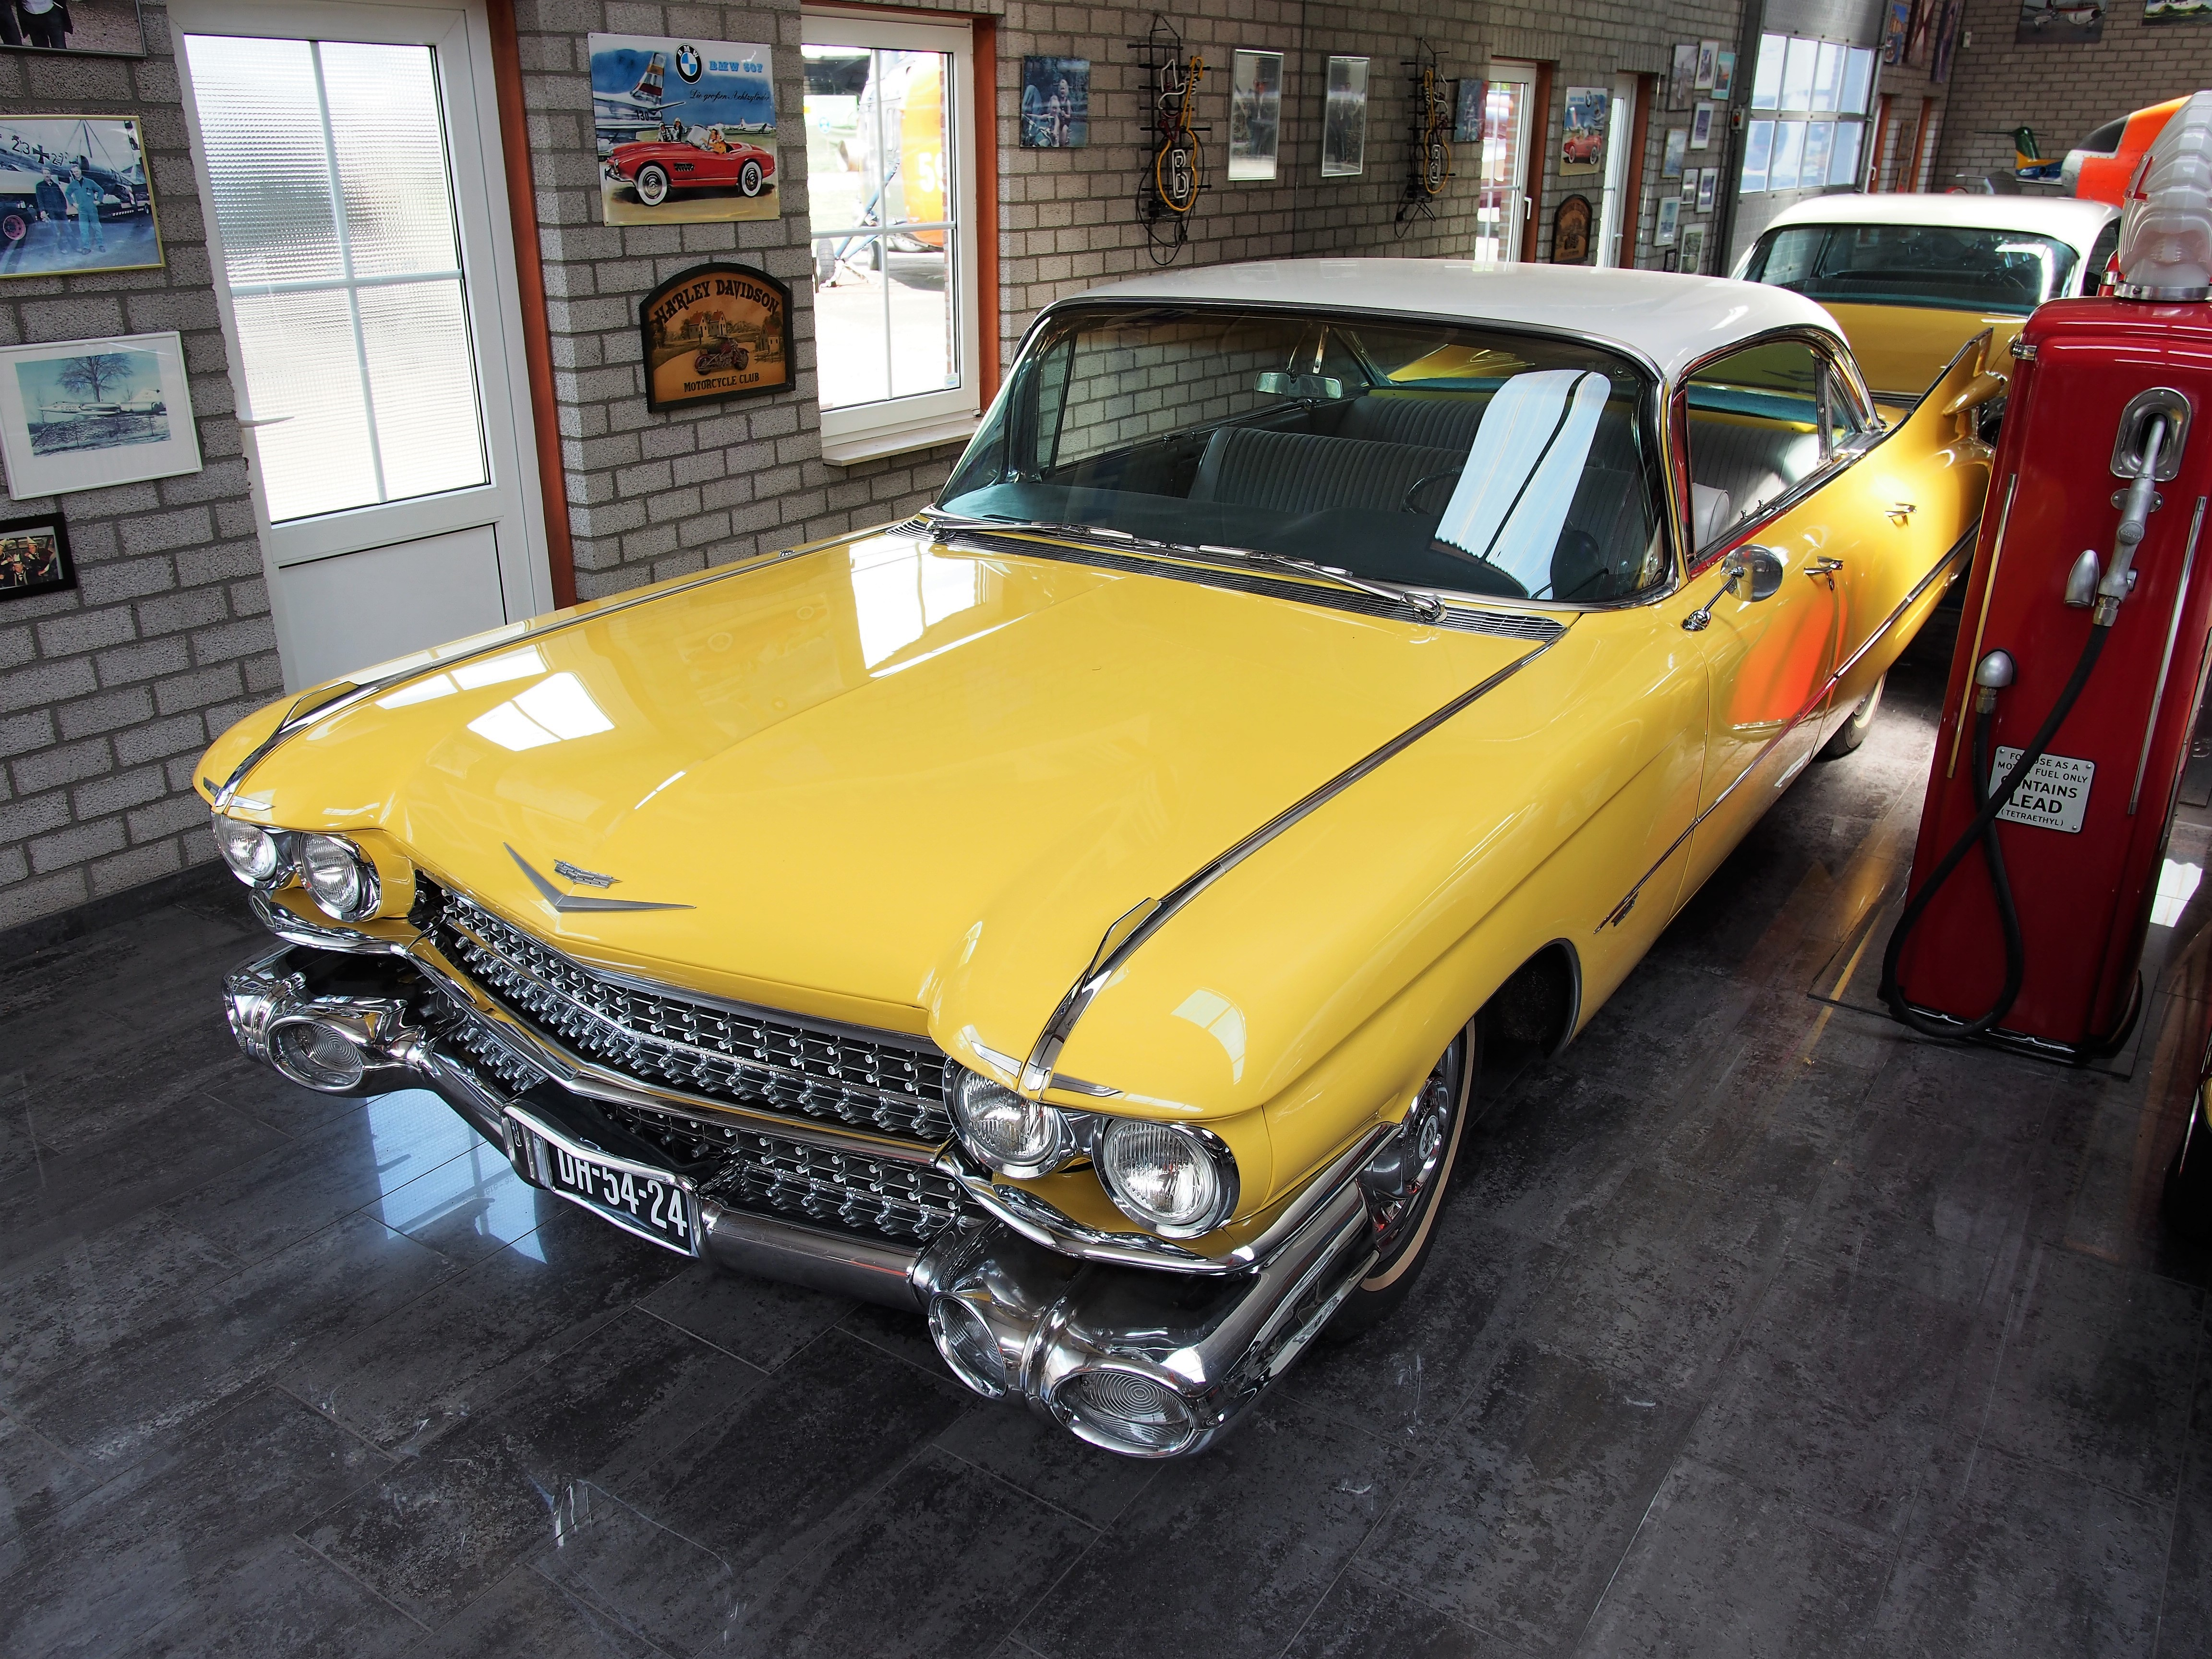 File:Yellow Cadillac at Piet Smits pic2.JPG - Wikimedia Commons